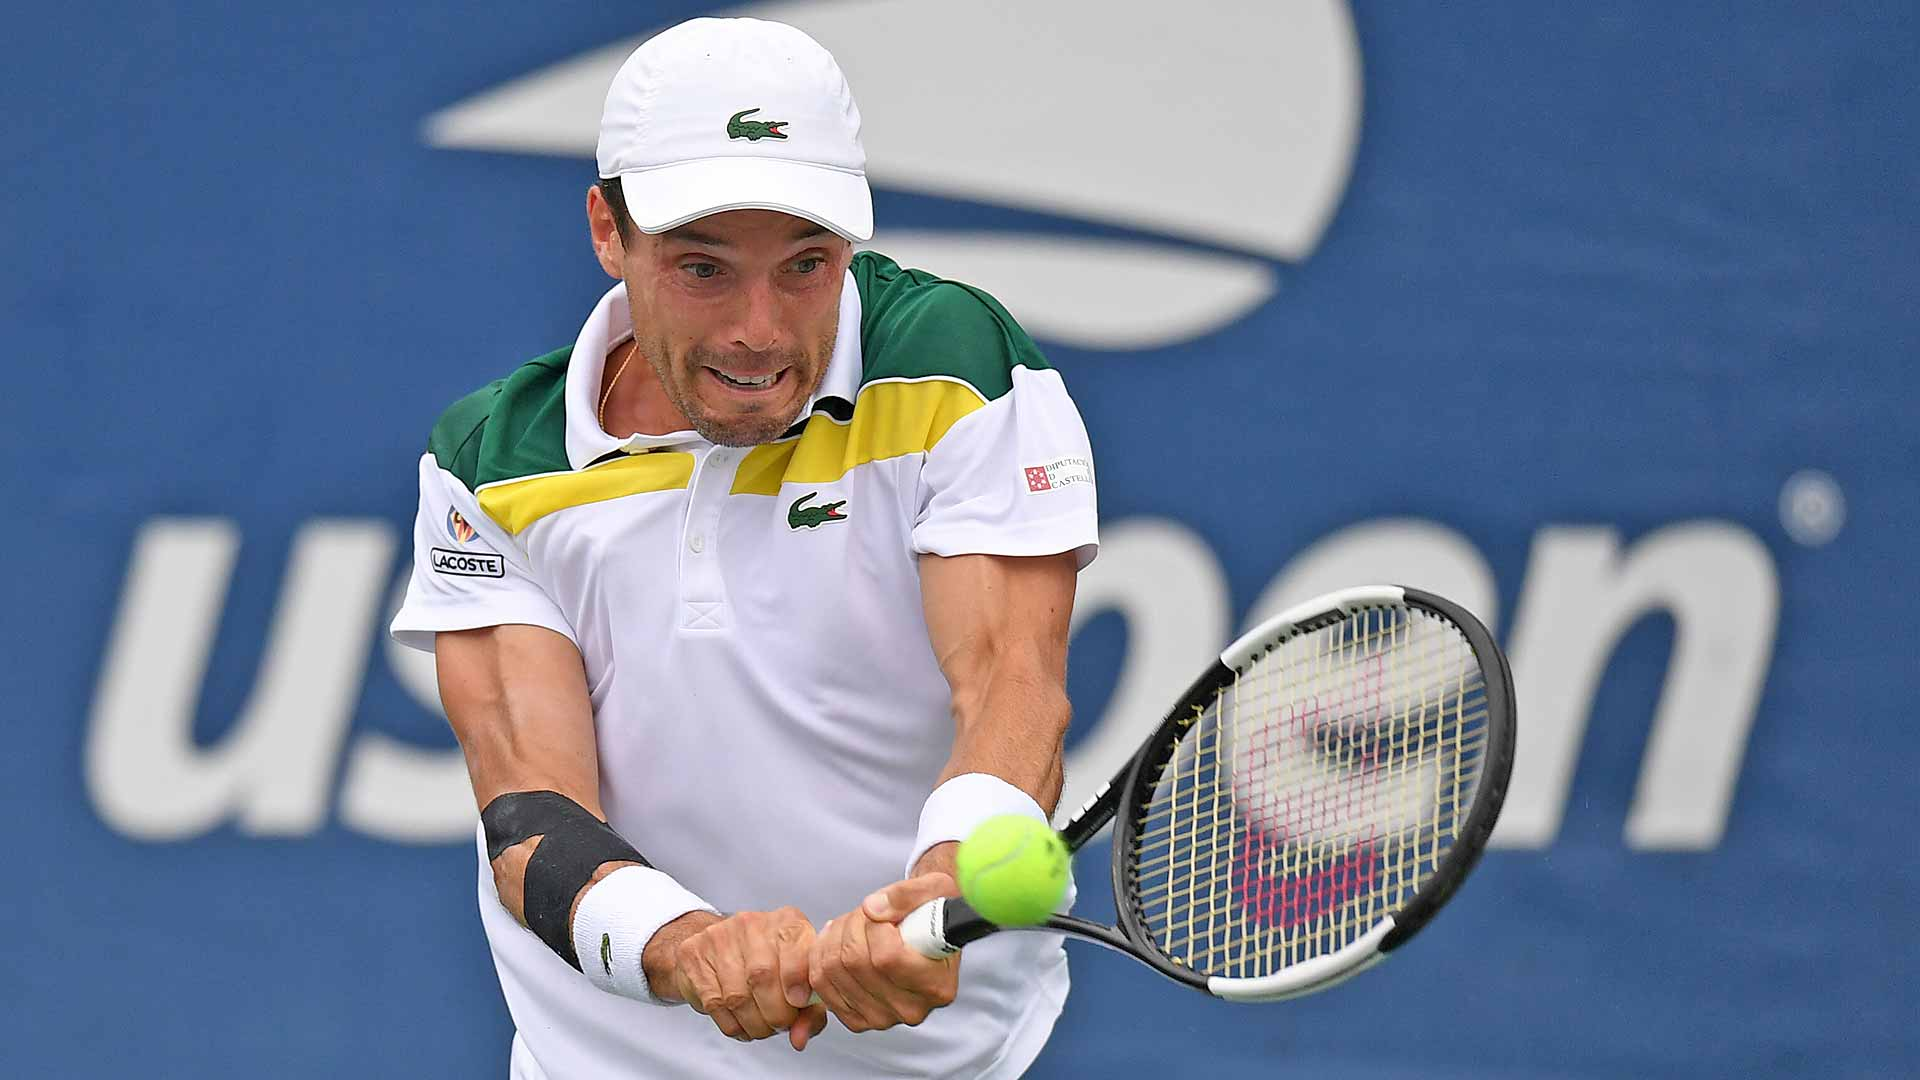 """<a href='https://www.atptour.com/en/players/roberto-bautista-agut/bd06/overview'>Roberto Bautista Agut</a>""""><br /><em><sup>Photo Credit: Rhea Nall/USTA<br /></sup></em>The 33-year-old lost just seven games in his first-round match against Aussie <a href="""